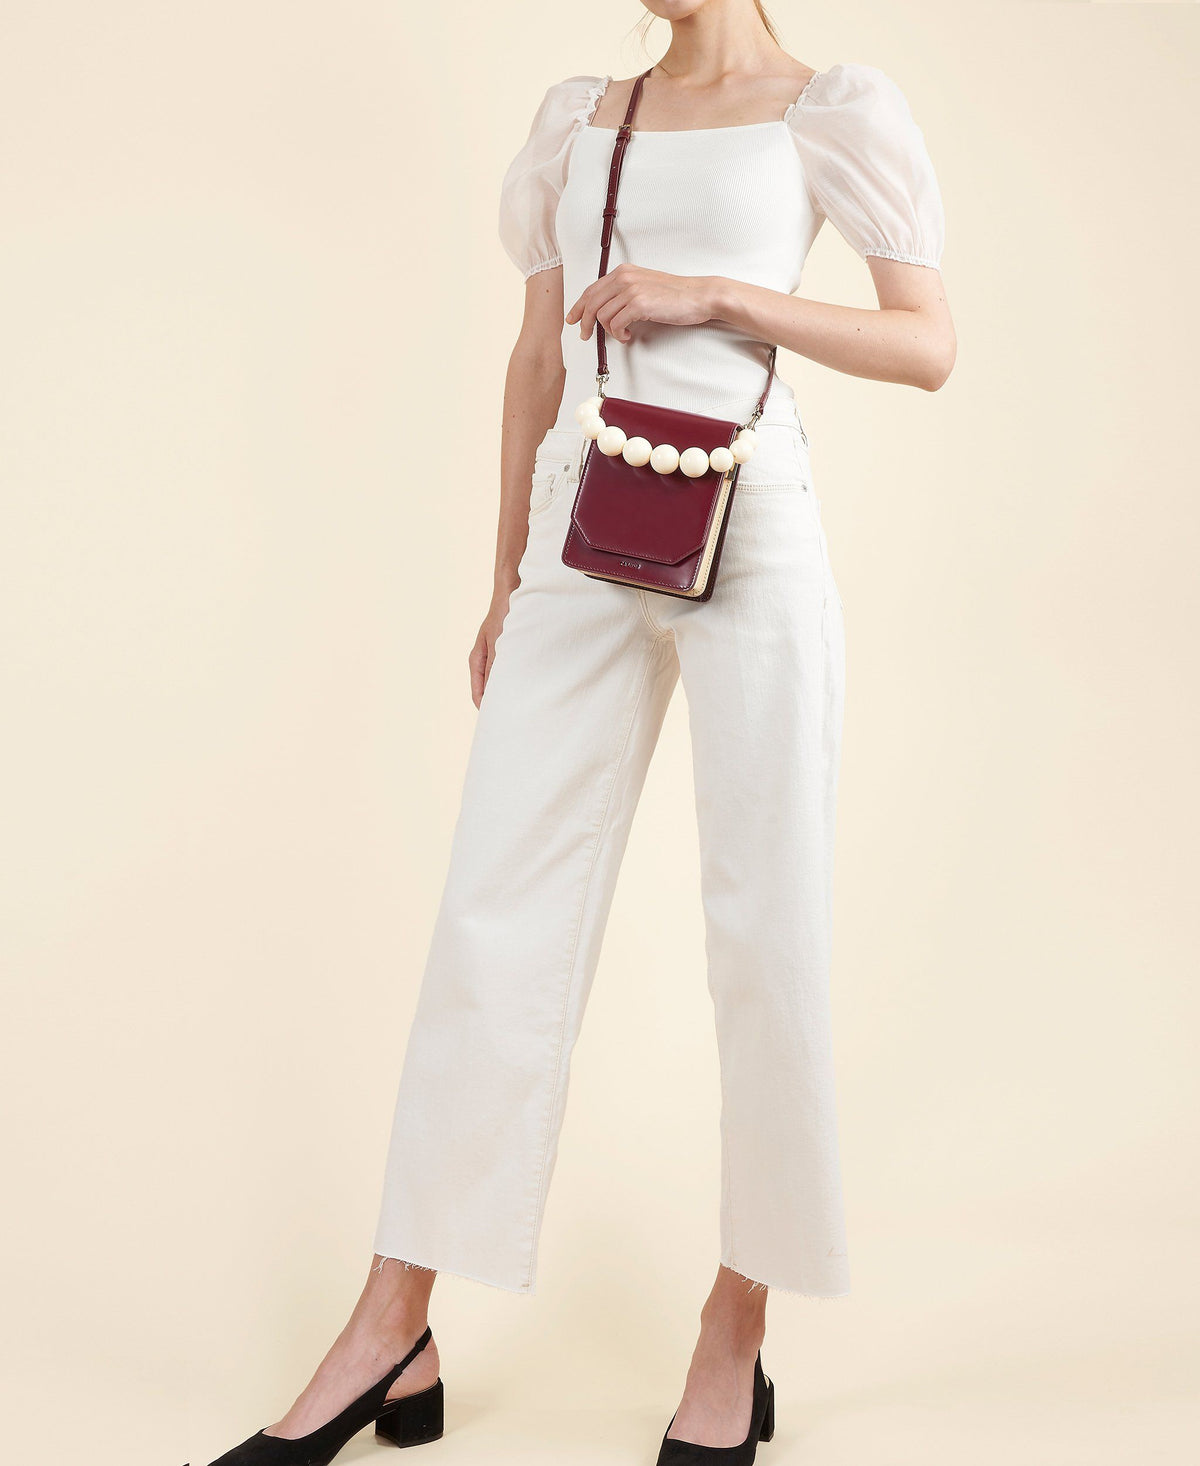 Cafuné Bellows Crossbody in Merlot